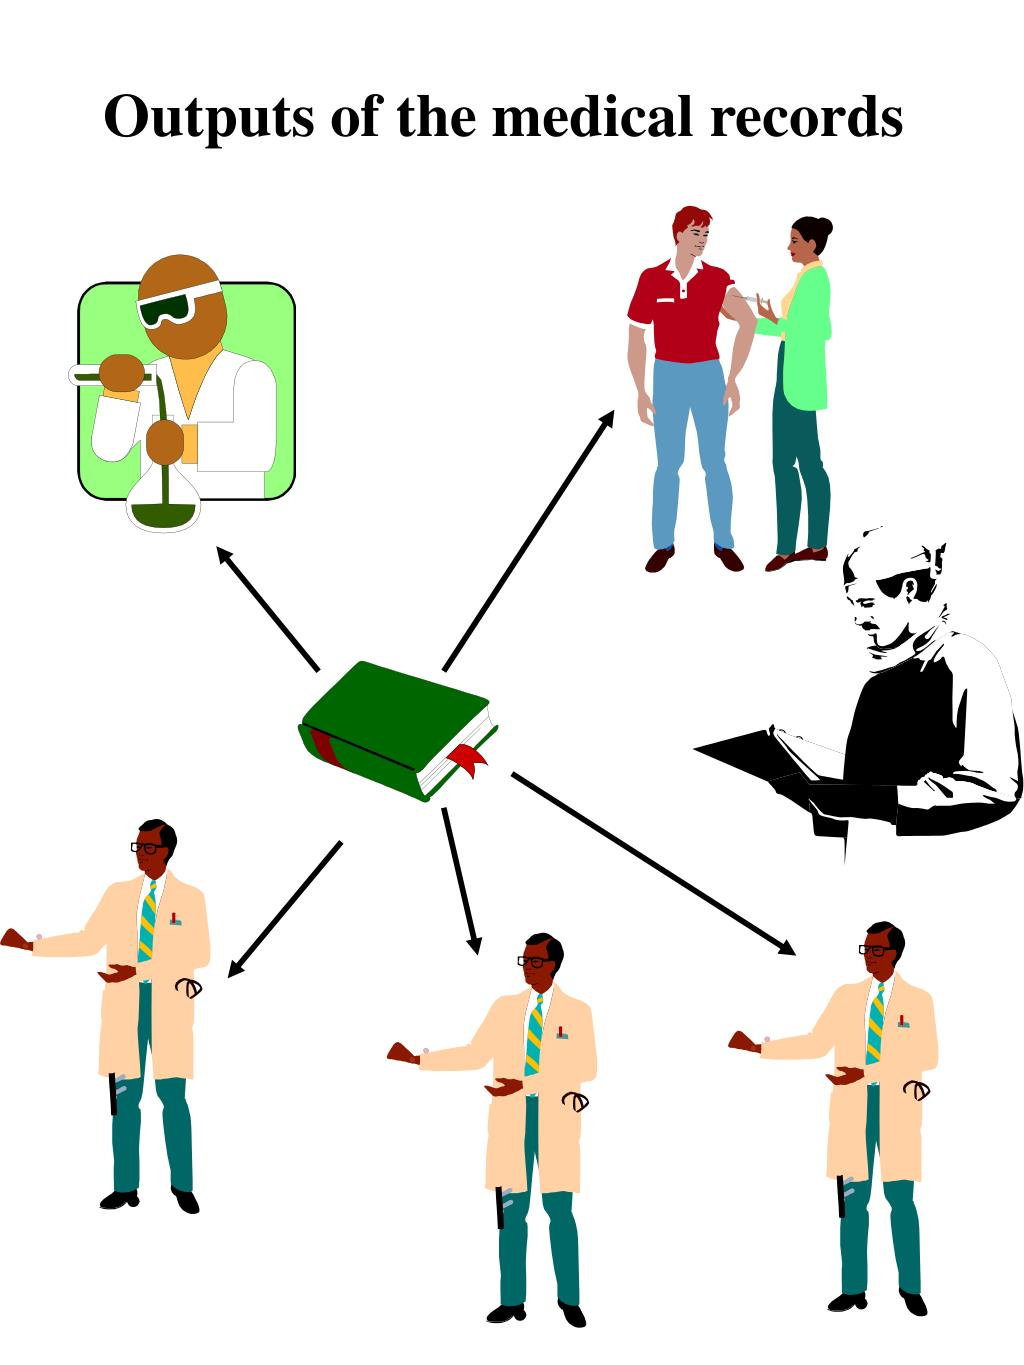 Outputs of the medical records